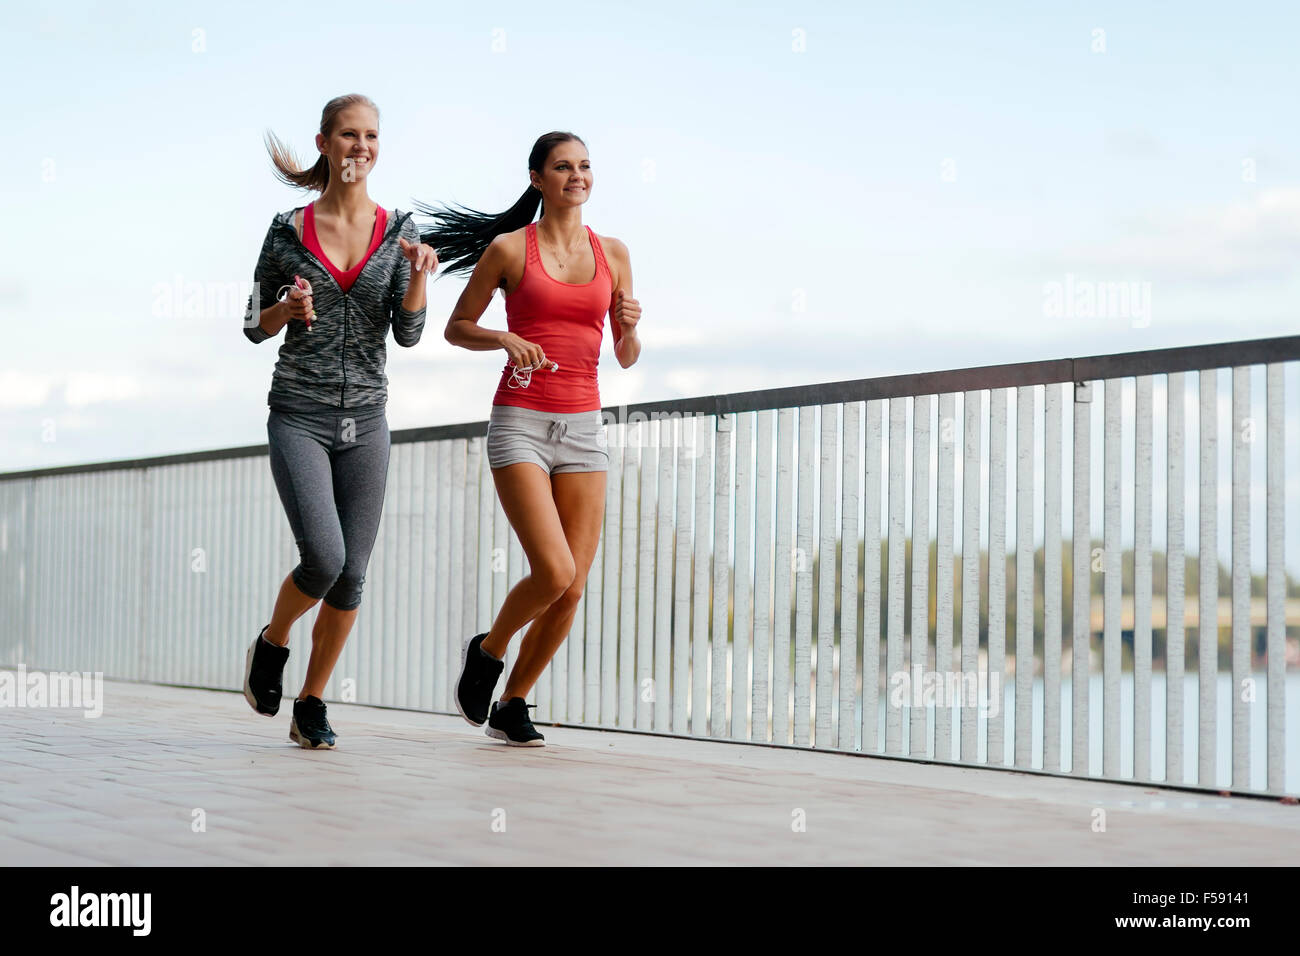 Fit women jogging outdoors and living a healthy lifestyle Stock Photo